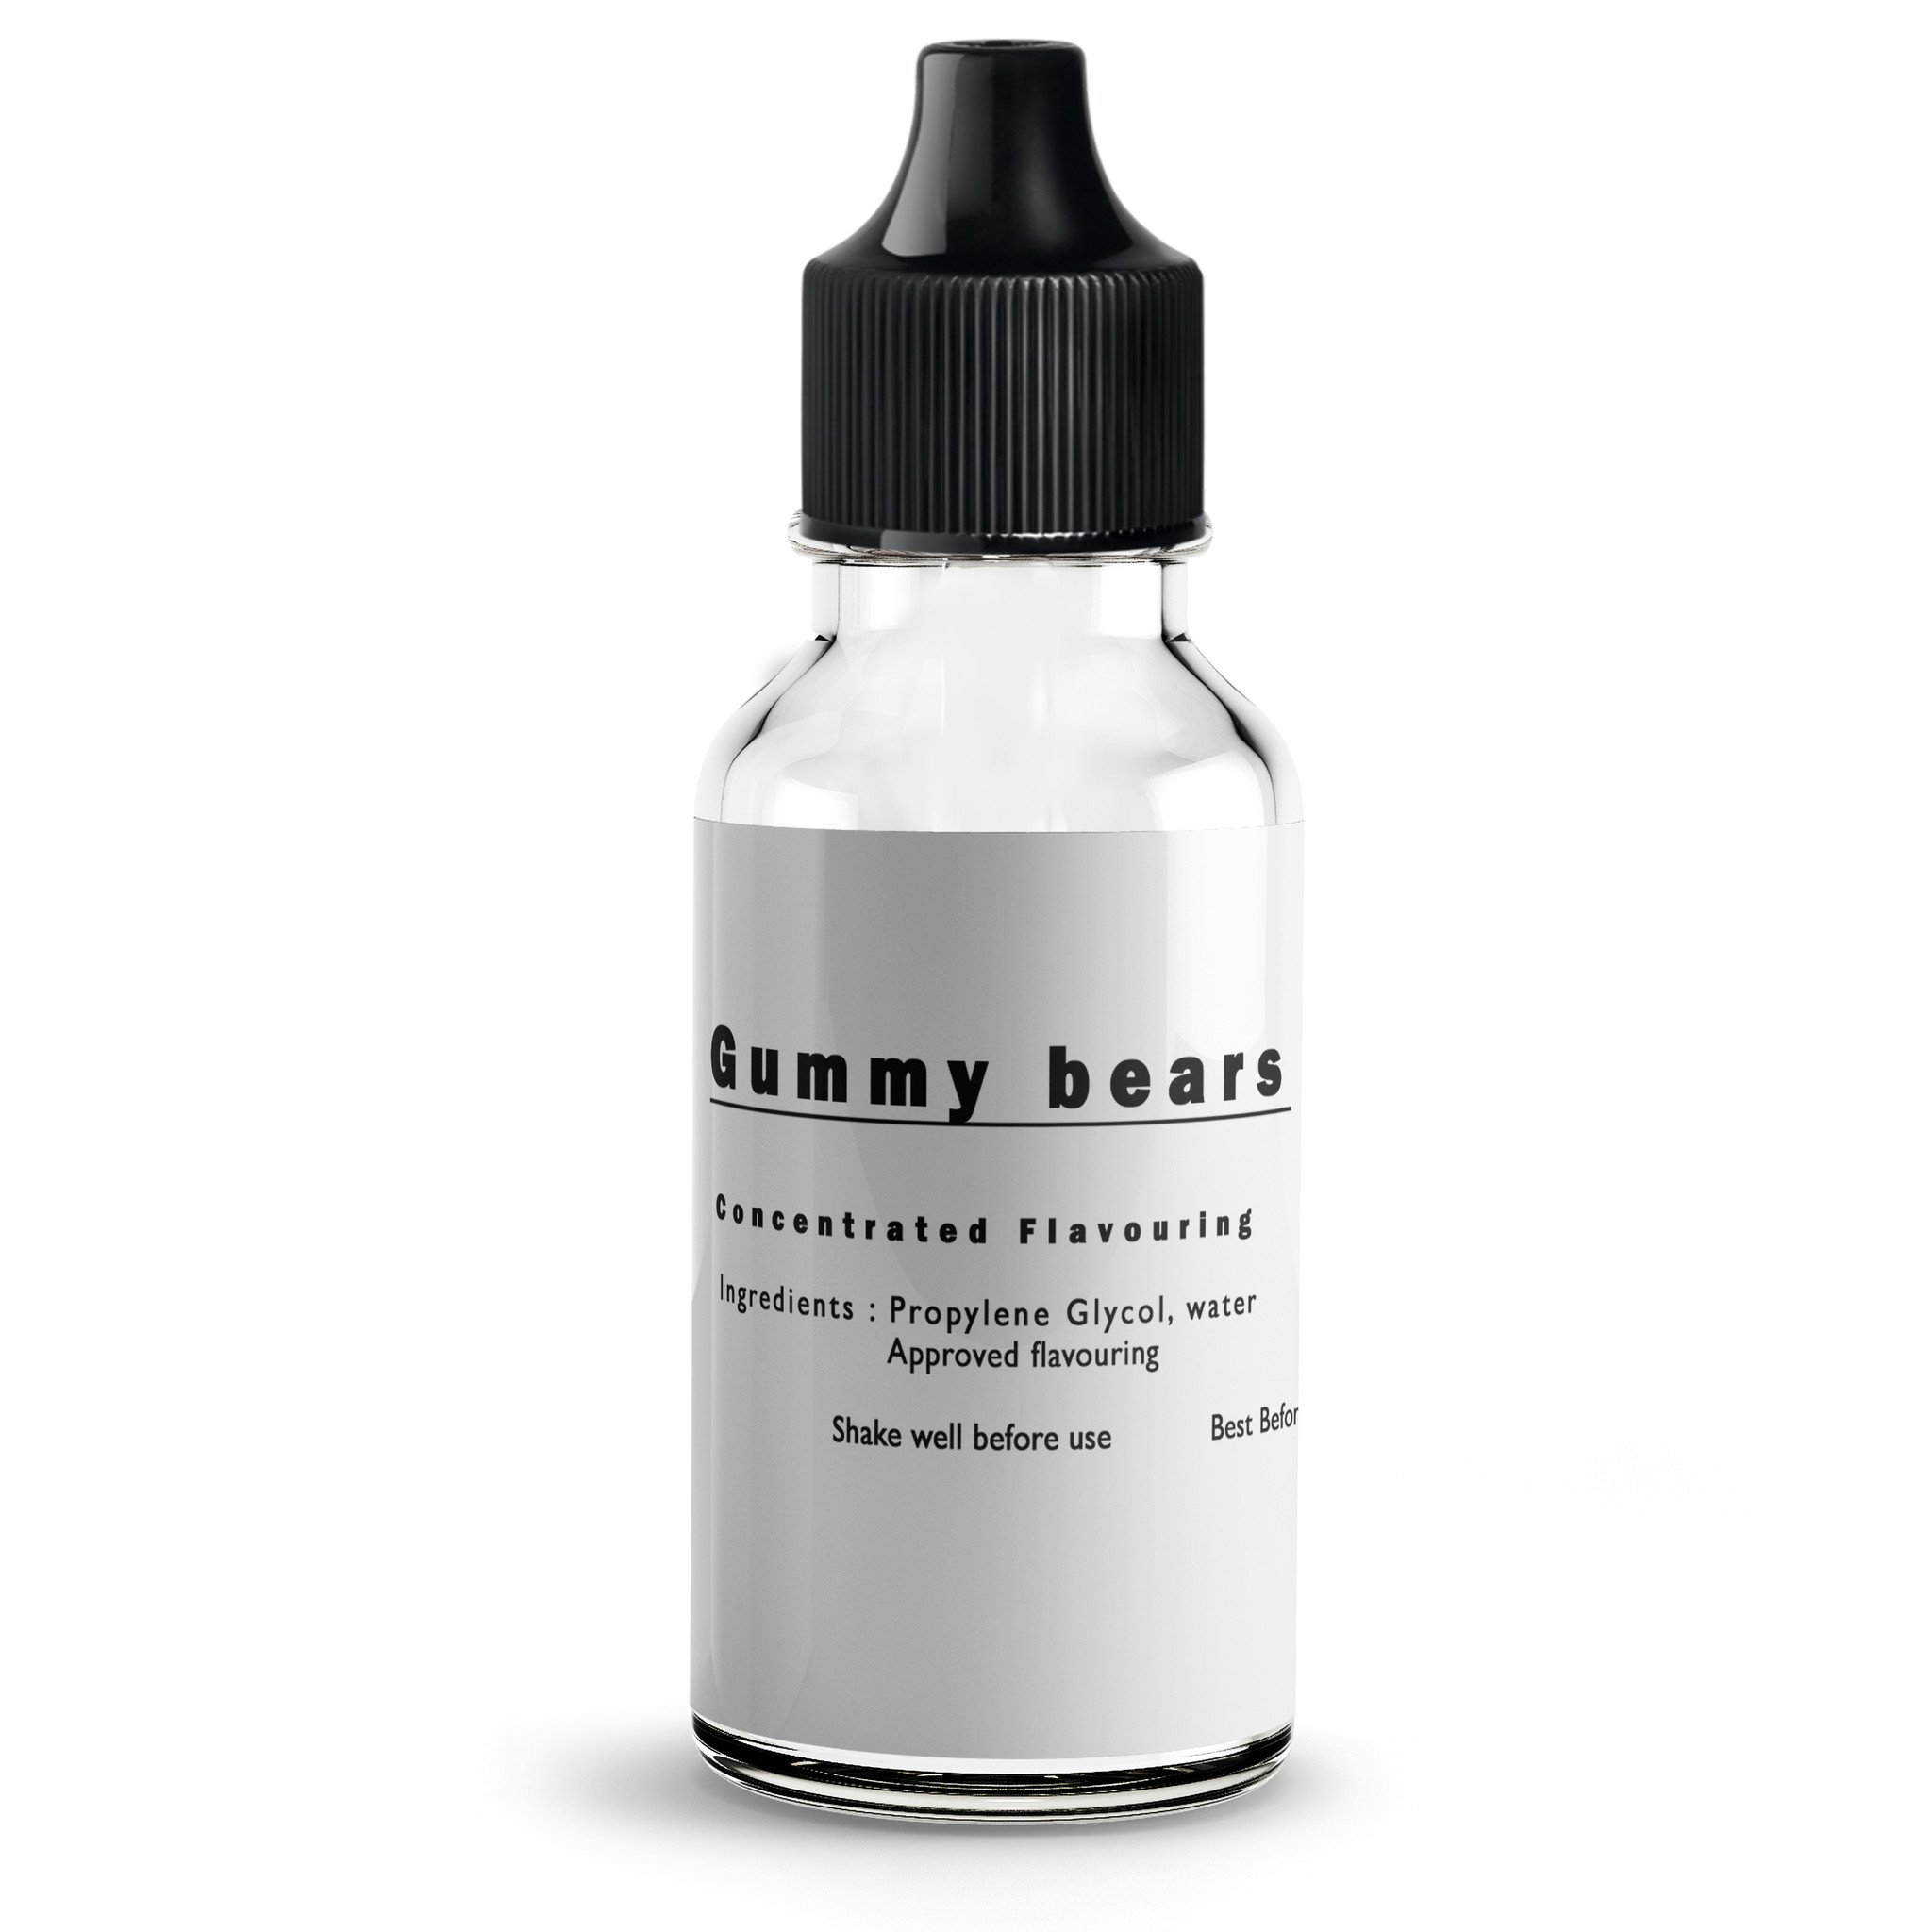 Gummy Bears Flavour concentrate for E liquids